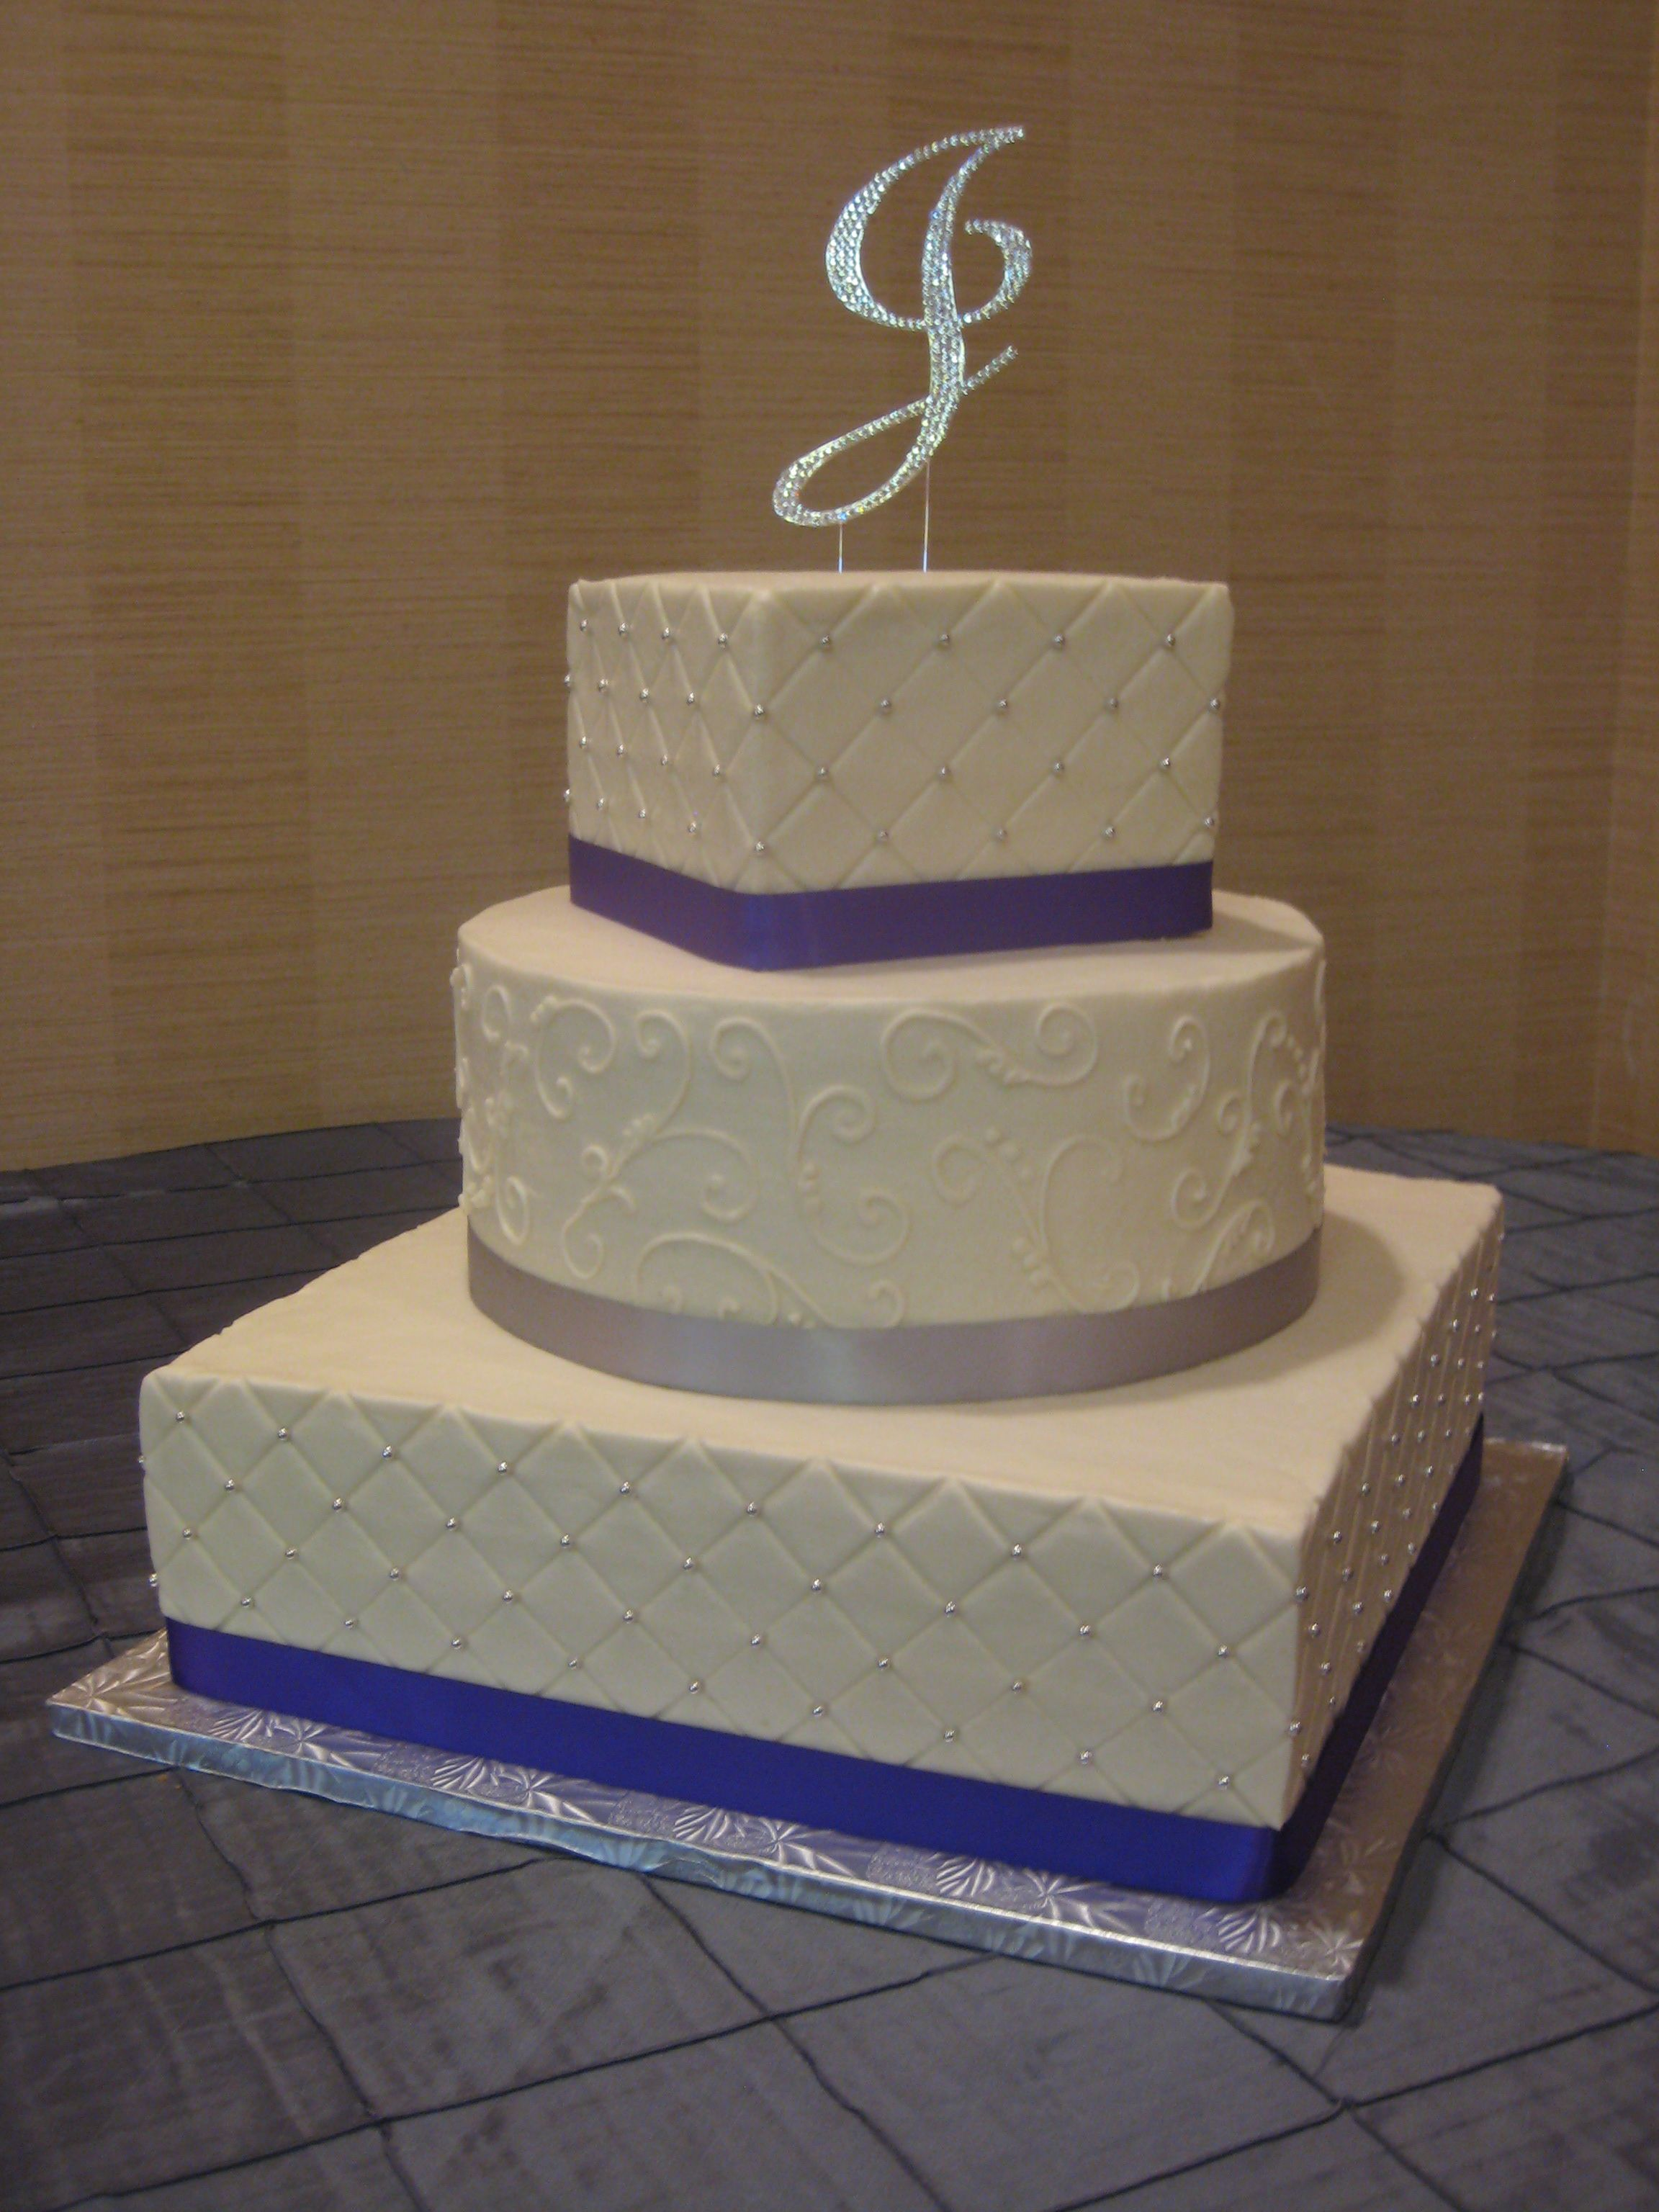 3 tier square and round wedding cake with diamond impression and